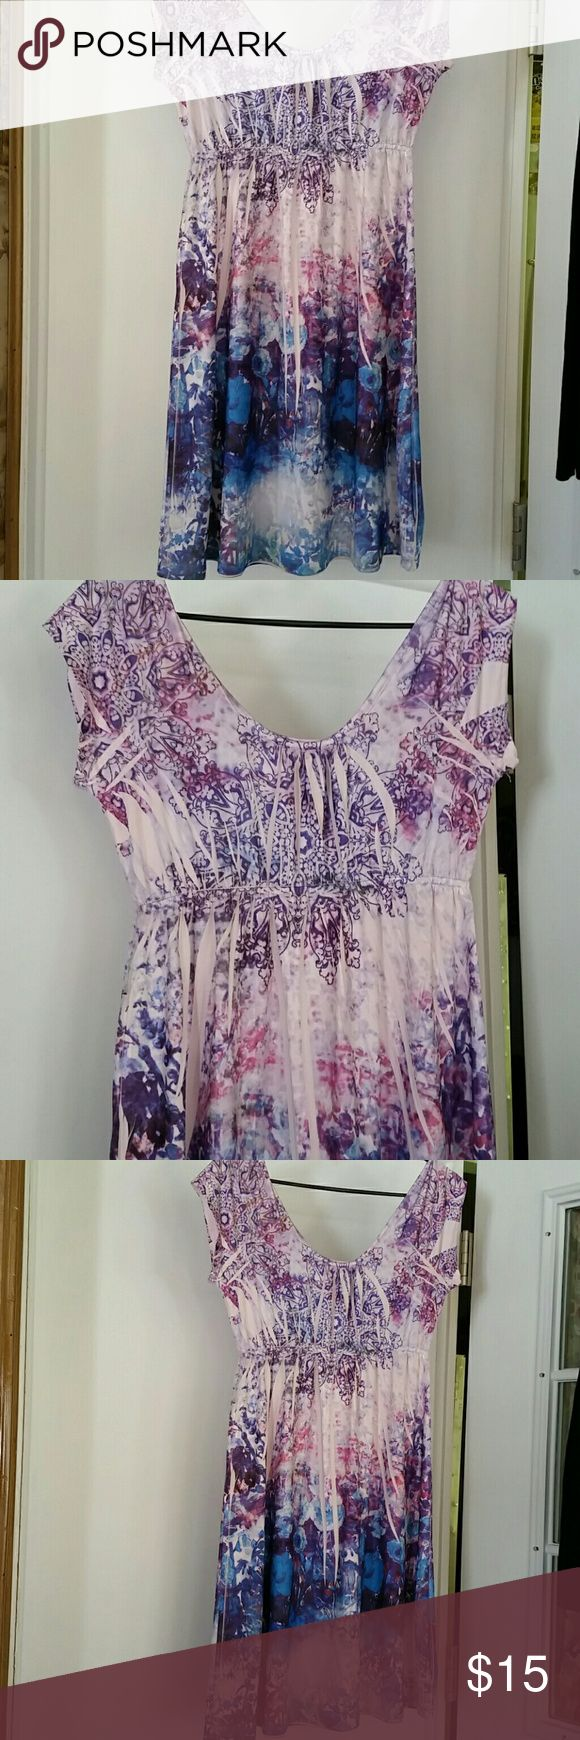 Tattoo sundress Nwot. This is a cute little floral tattoo design sundress. Brand NEW! It's a poly/spandex blend and is silky and flowy! Beautiful shades of purple and blue. From non smoking and pet free home. Price negotiable! Kiara Dresses